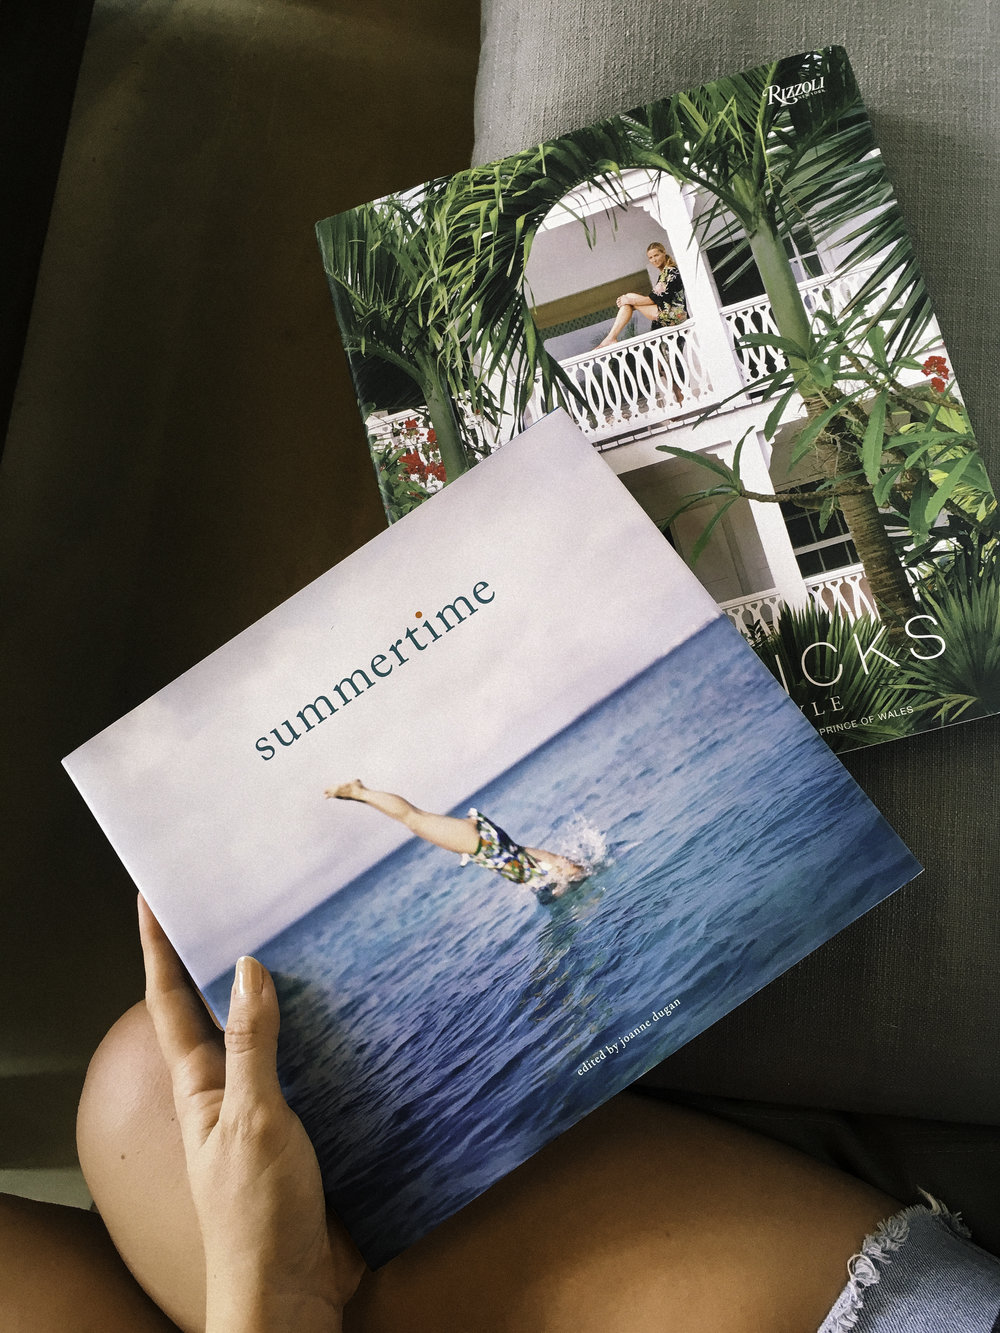 You can purchase  'Summertime' by Joanne Dugan  &  'Island Style' by India Hicks  at these links.